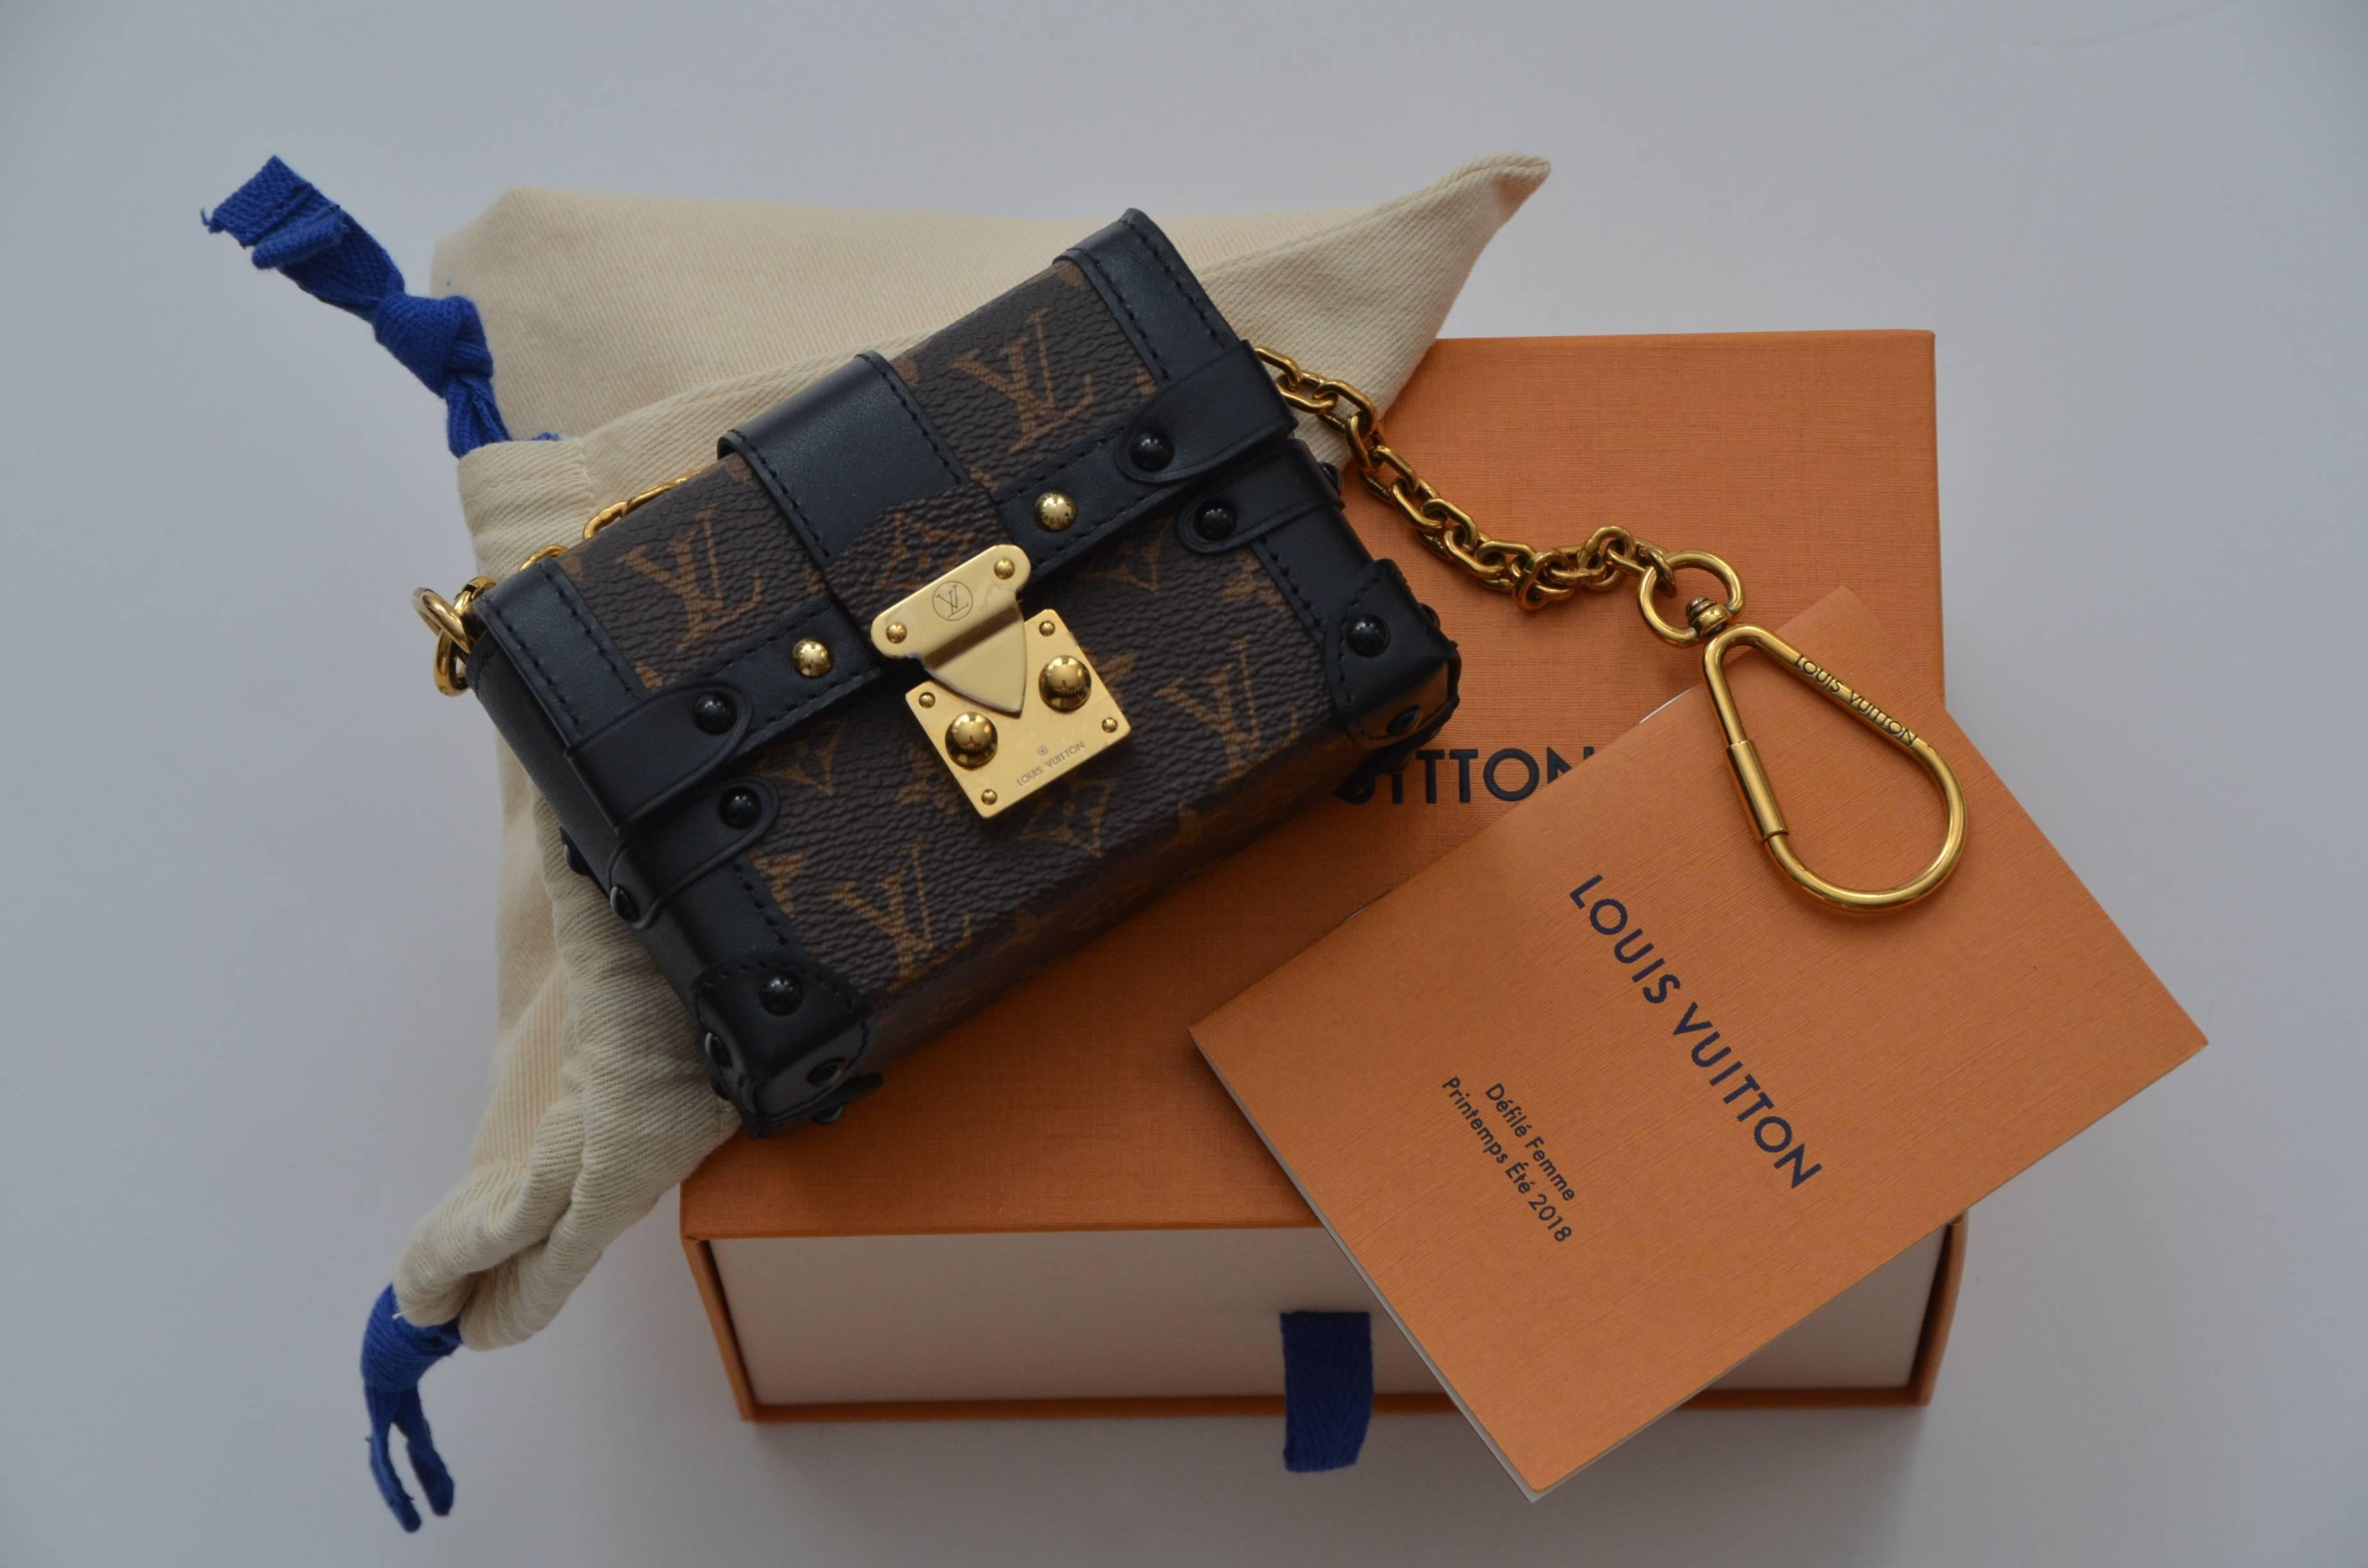 1c1b09deb391 Louis Vuitton Runway Miniature Essential Trunk Bag NEW Last One Available  For Sale at 1stdibs